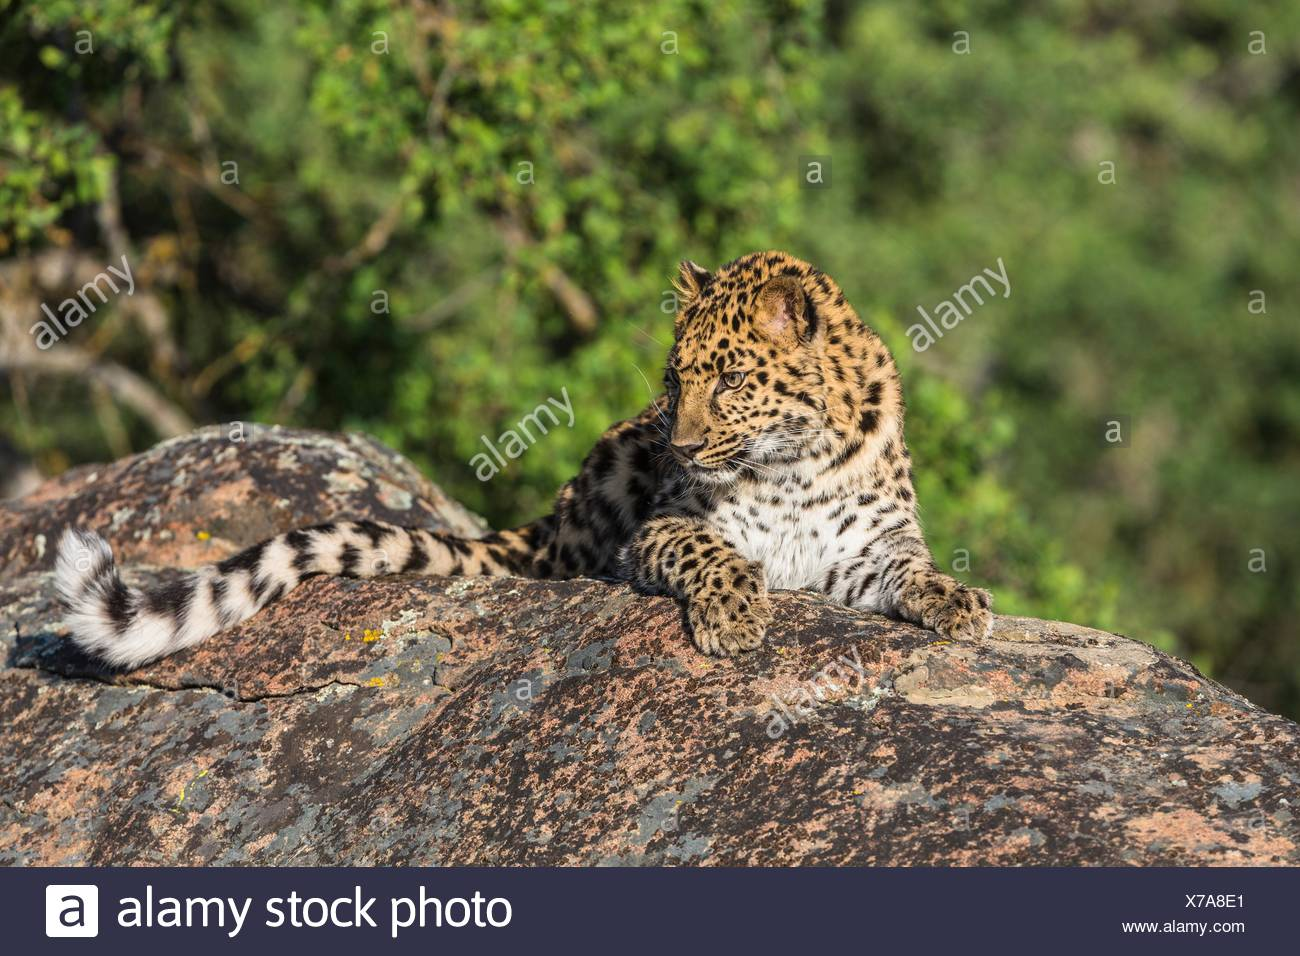 Watchful Amur leopard (Panthera pardus orientalis) on a rock, captive, California, USA - Stock Image